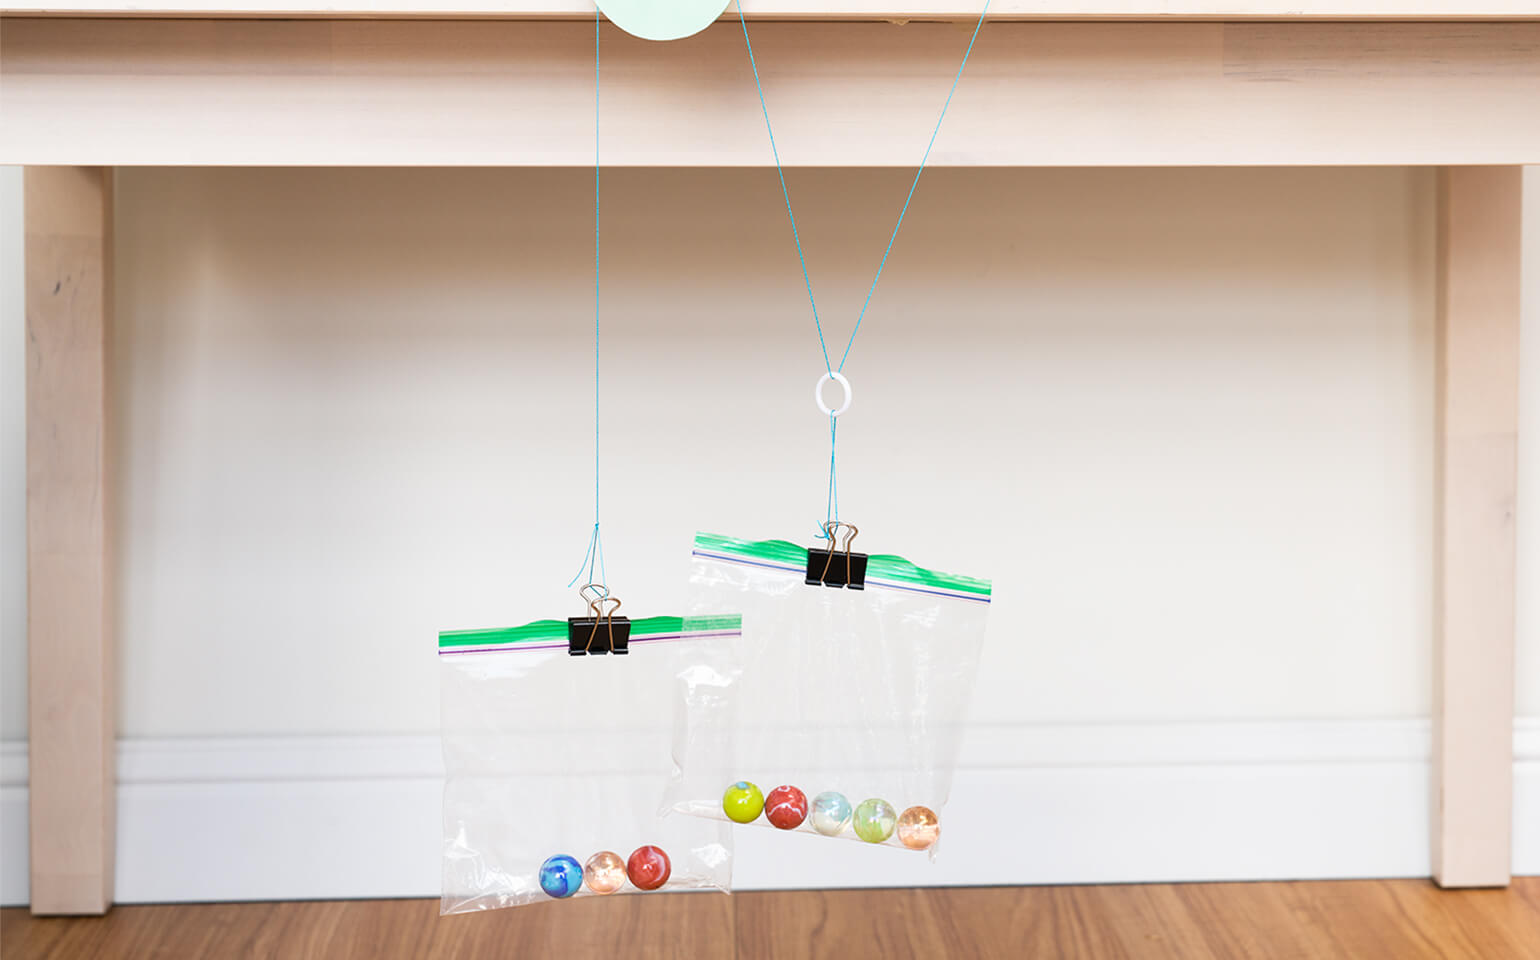 Playing-With-Pulleys-Body-12-2x